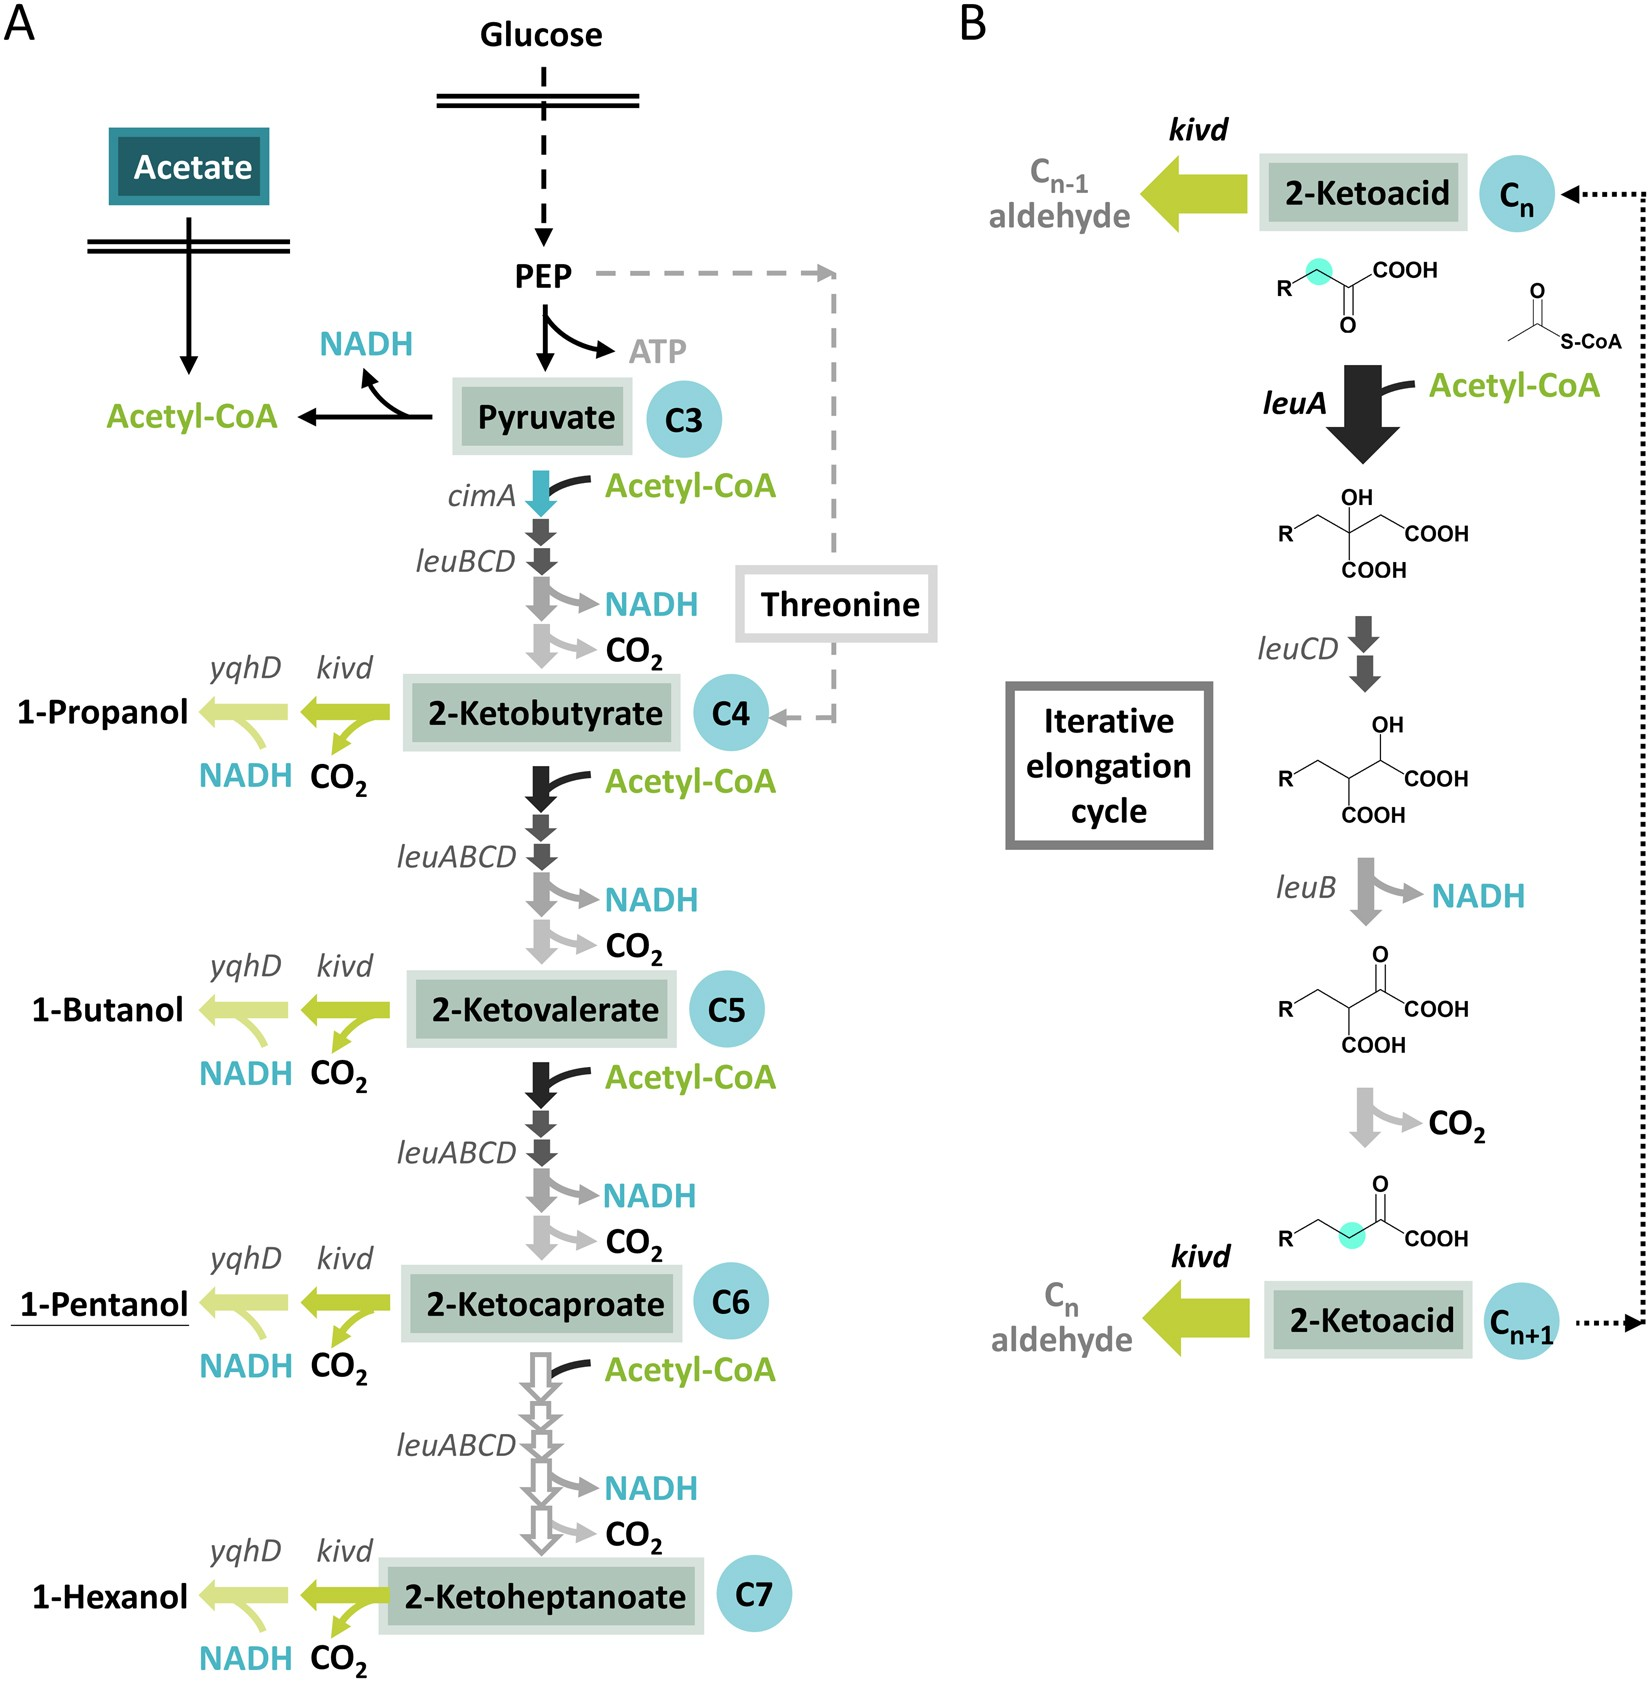 Saturated mutagenesis of ketoisovalerate decarboxylase V461 enabled